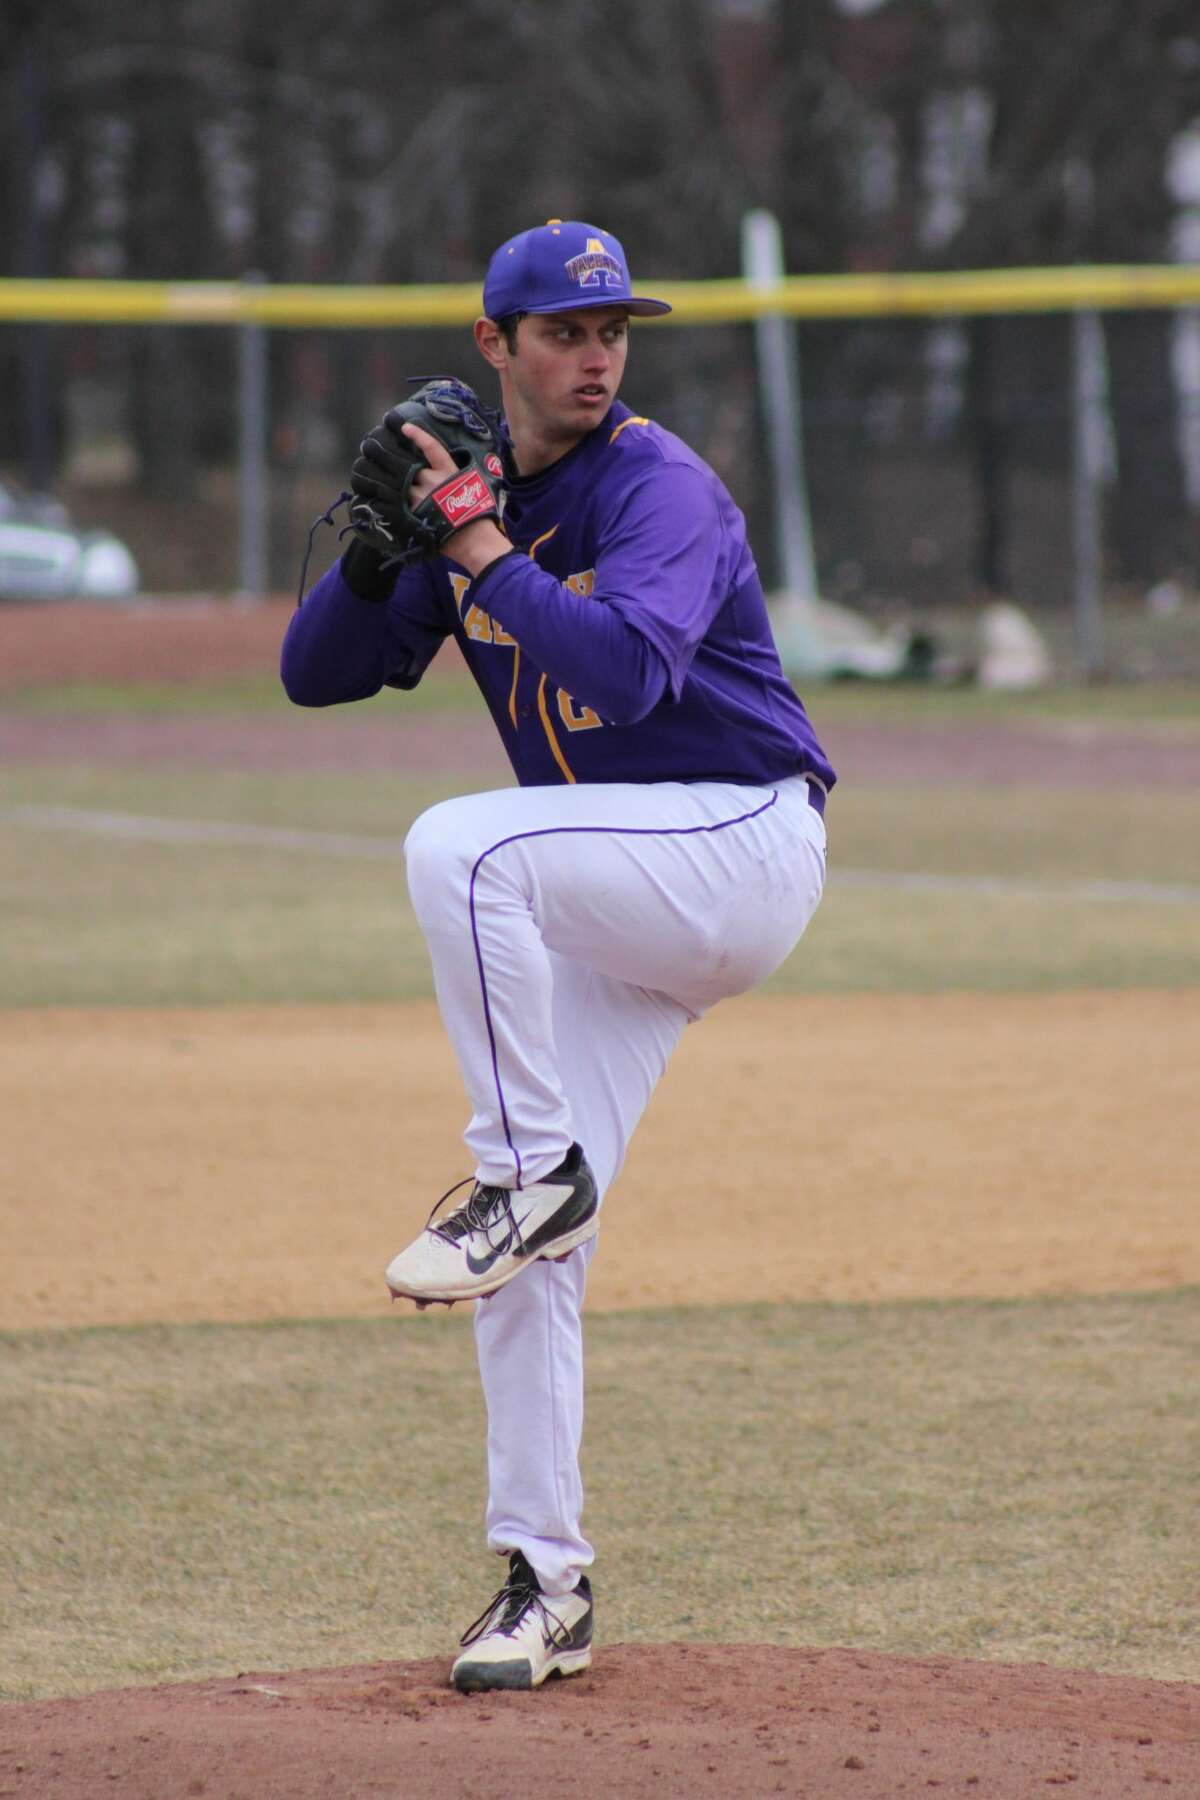 Former UAlbany pitcher Stephen Woods Jr. was drafted in the eighth round by the San Francisco Giants in 2016, then traded to Tampa Bay. Now he's on the Kansas City Royals' active roster. (UAlbany athletics)